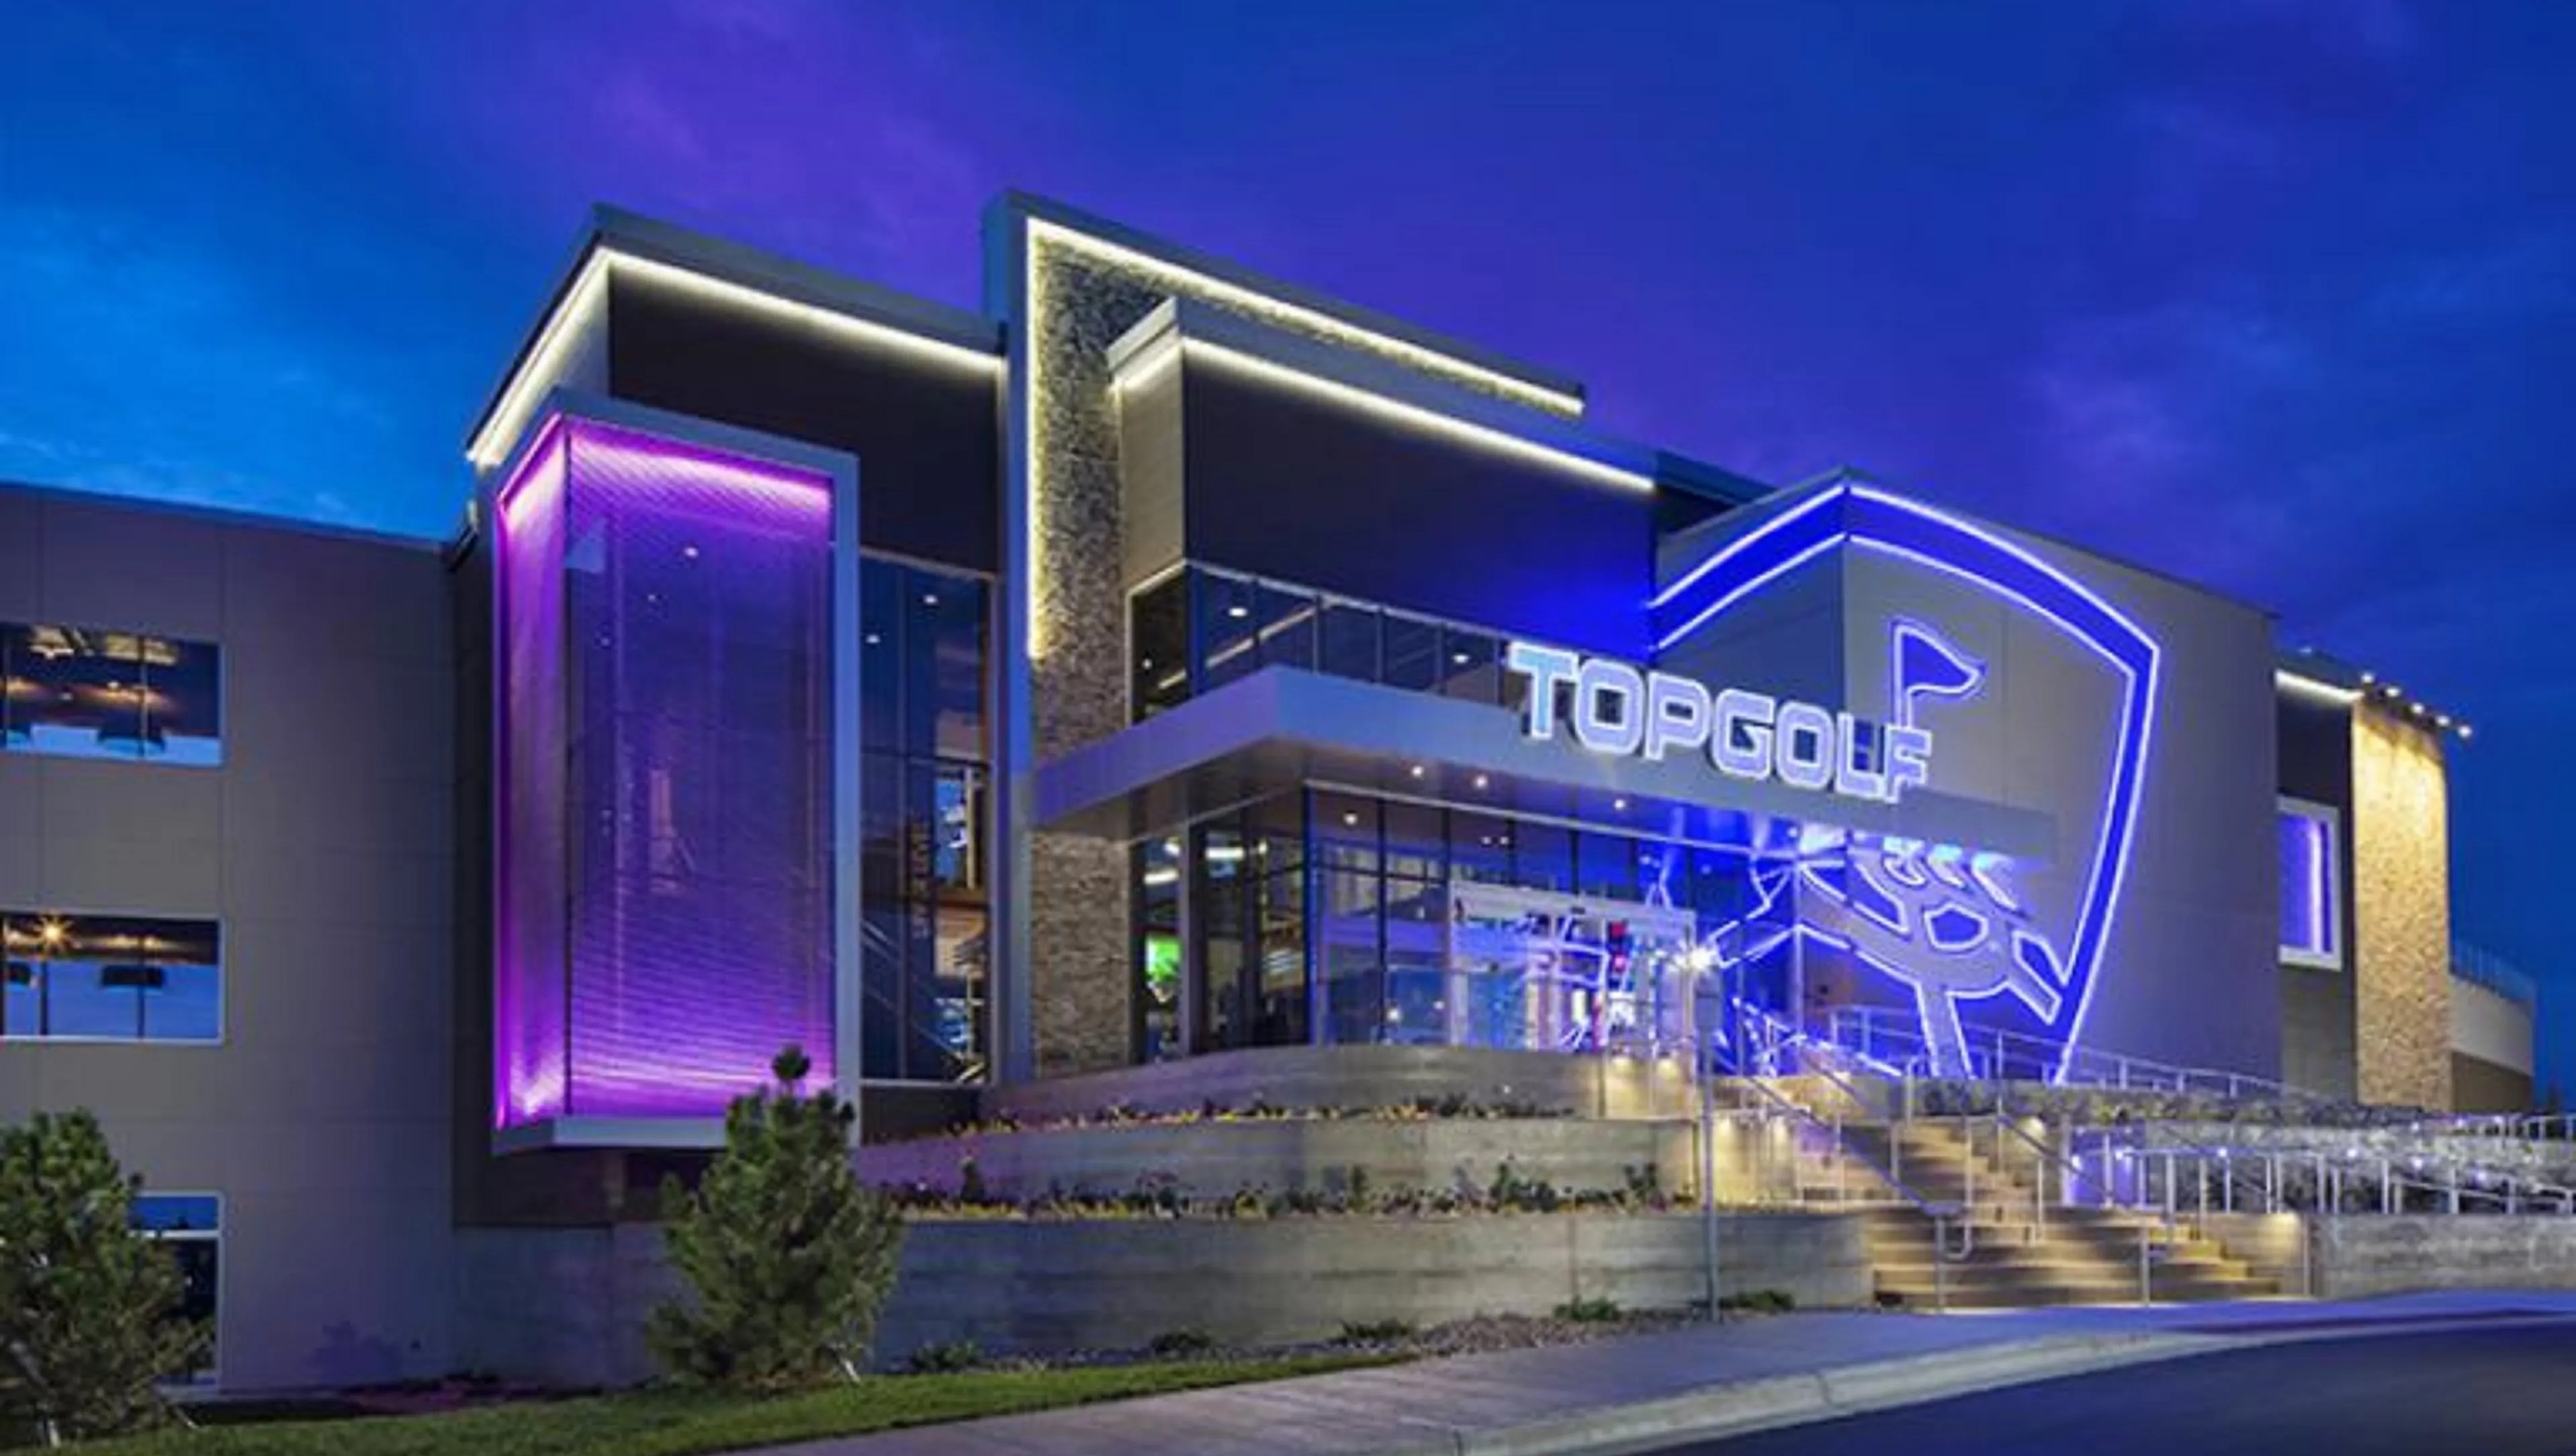 Edison Topgolf to open first NJ location Friday